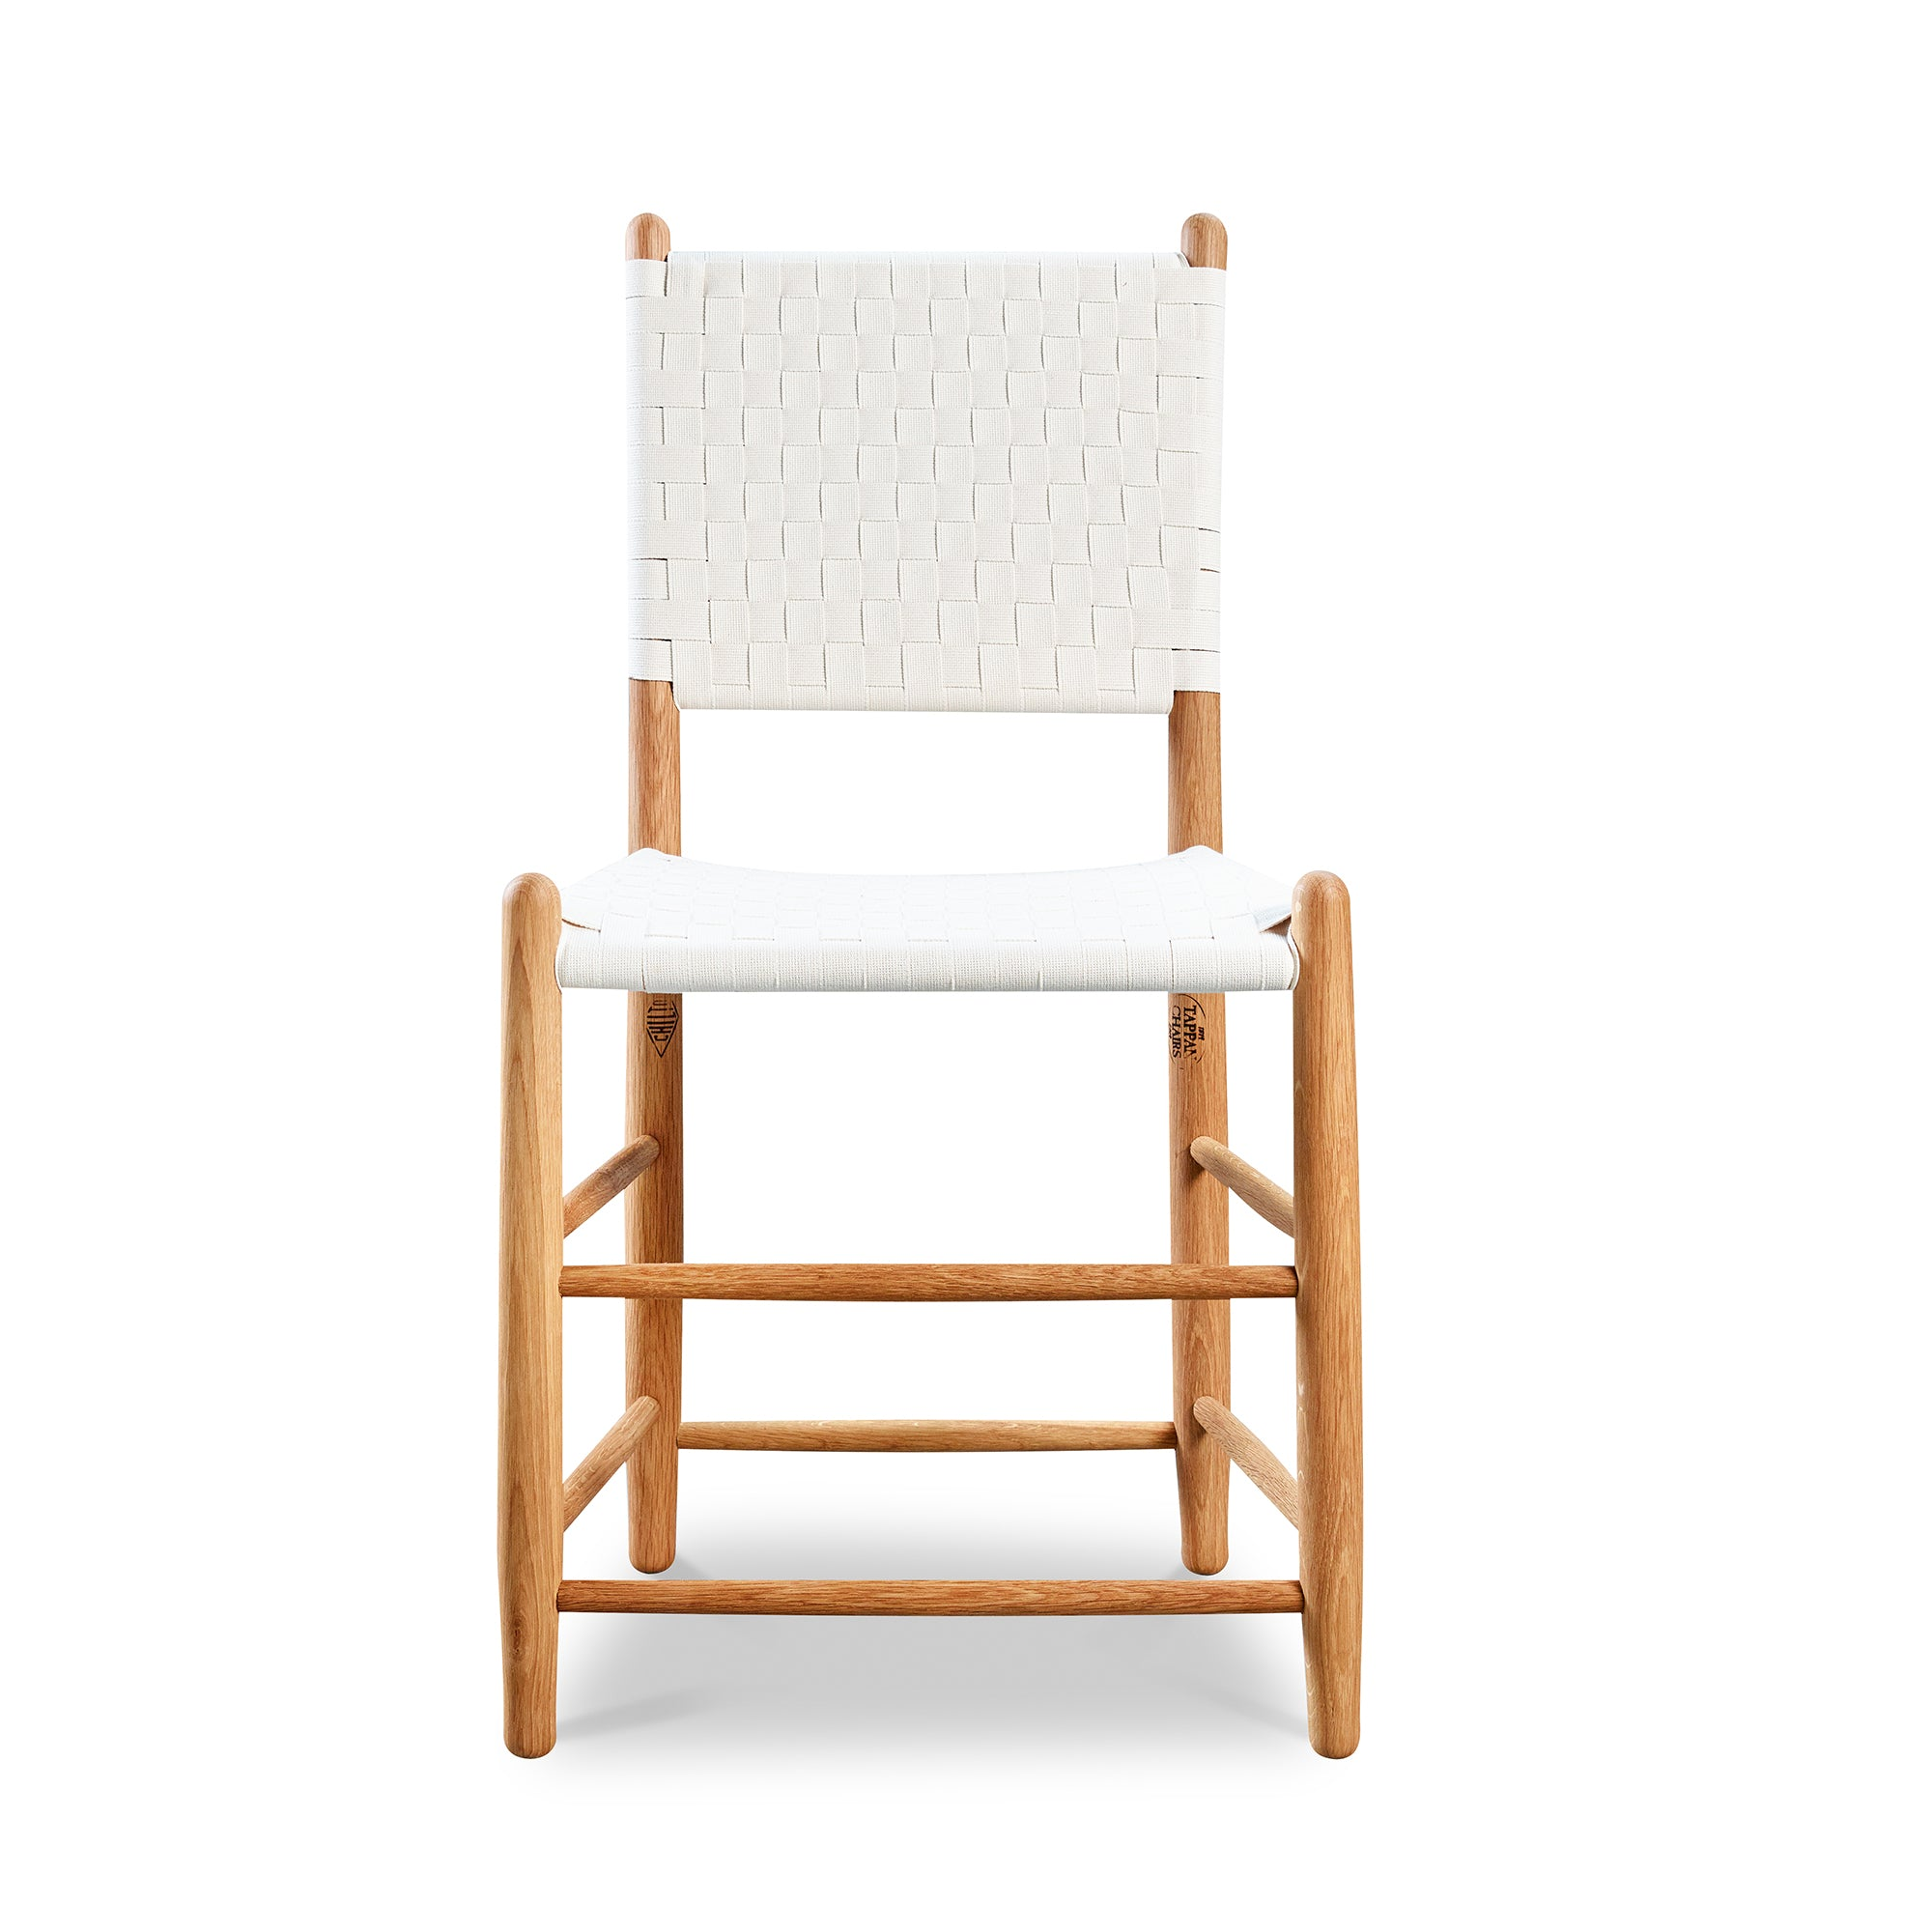 Classic Shaker style dining chair in cherry with woven seat and back tape, from Maine's Chilton Furniture Co.